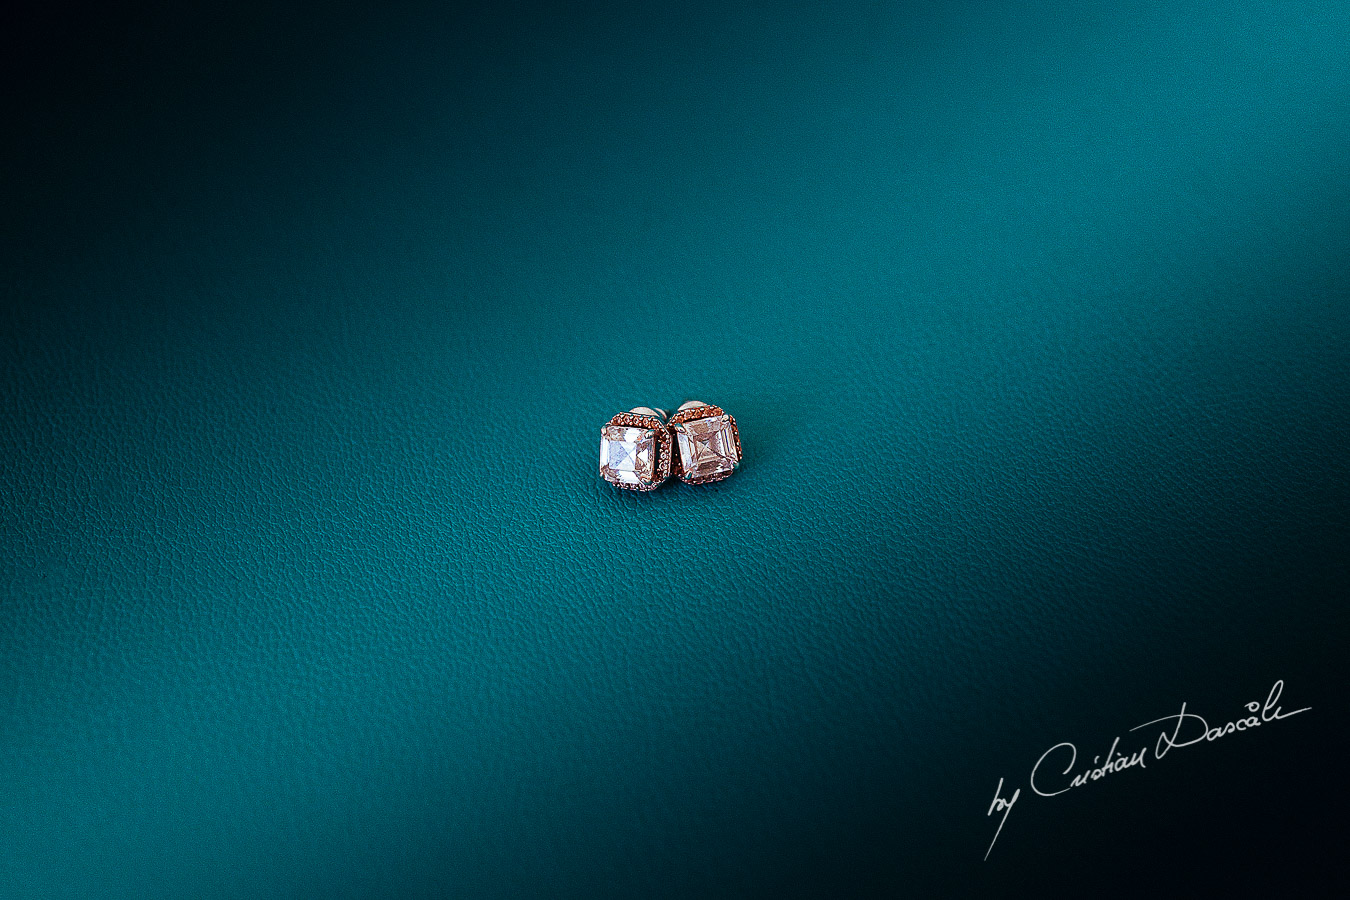 Bridal earings photographed at King Evelton Beach and Resort by Cristian Dascalu